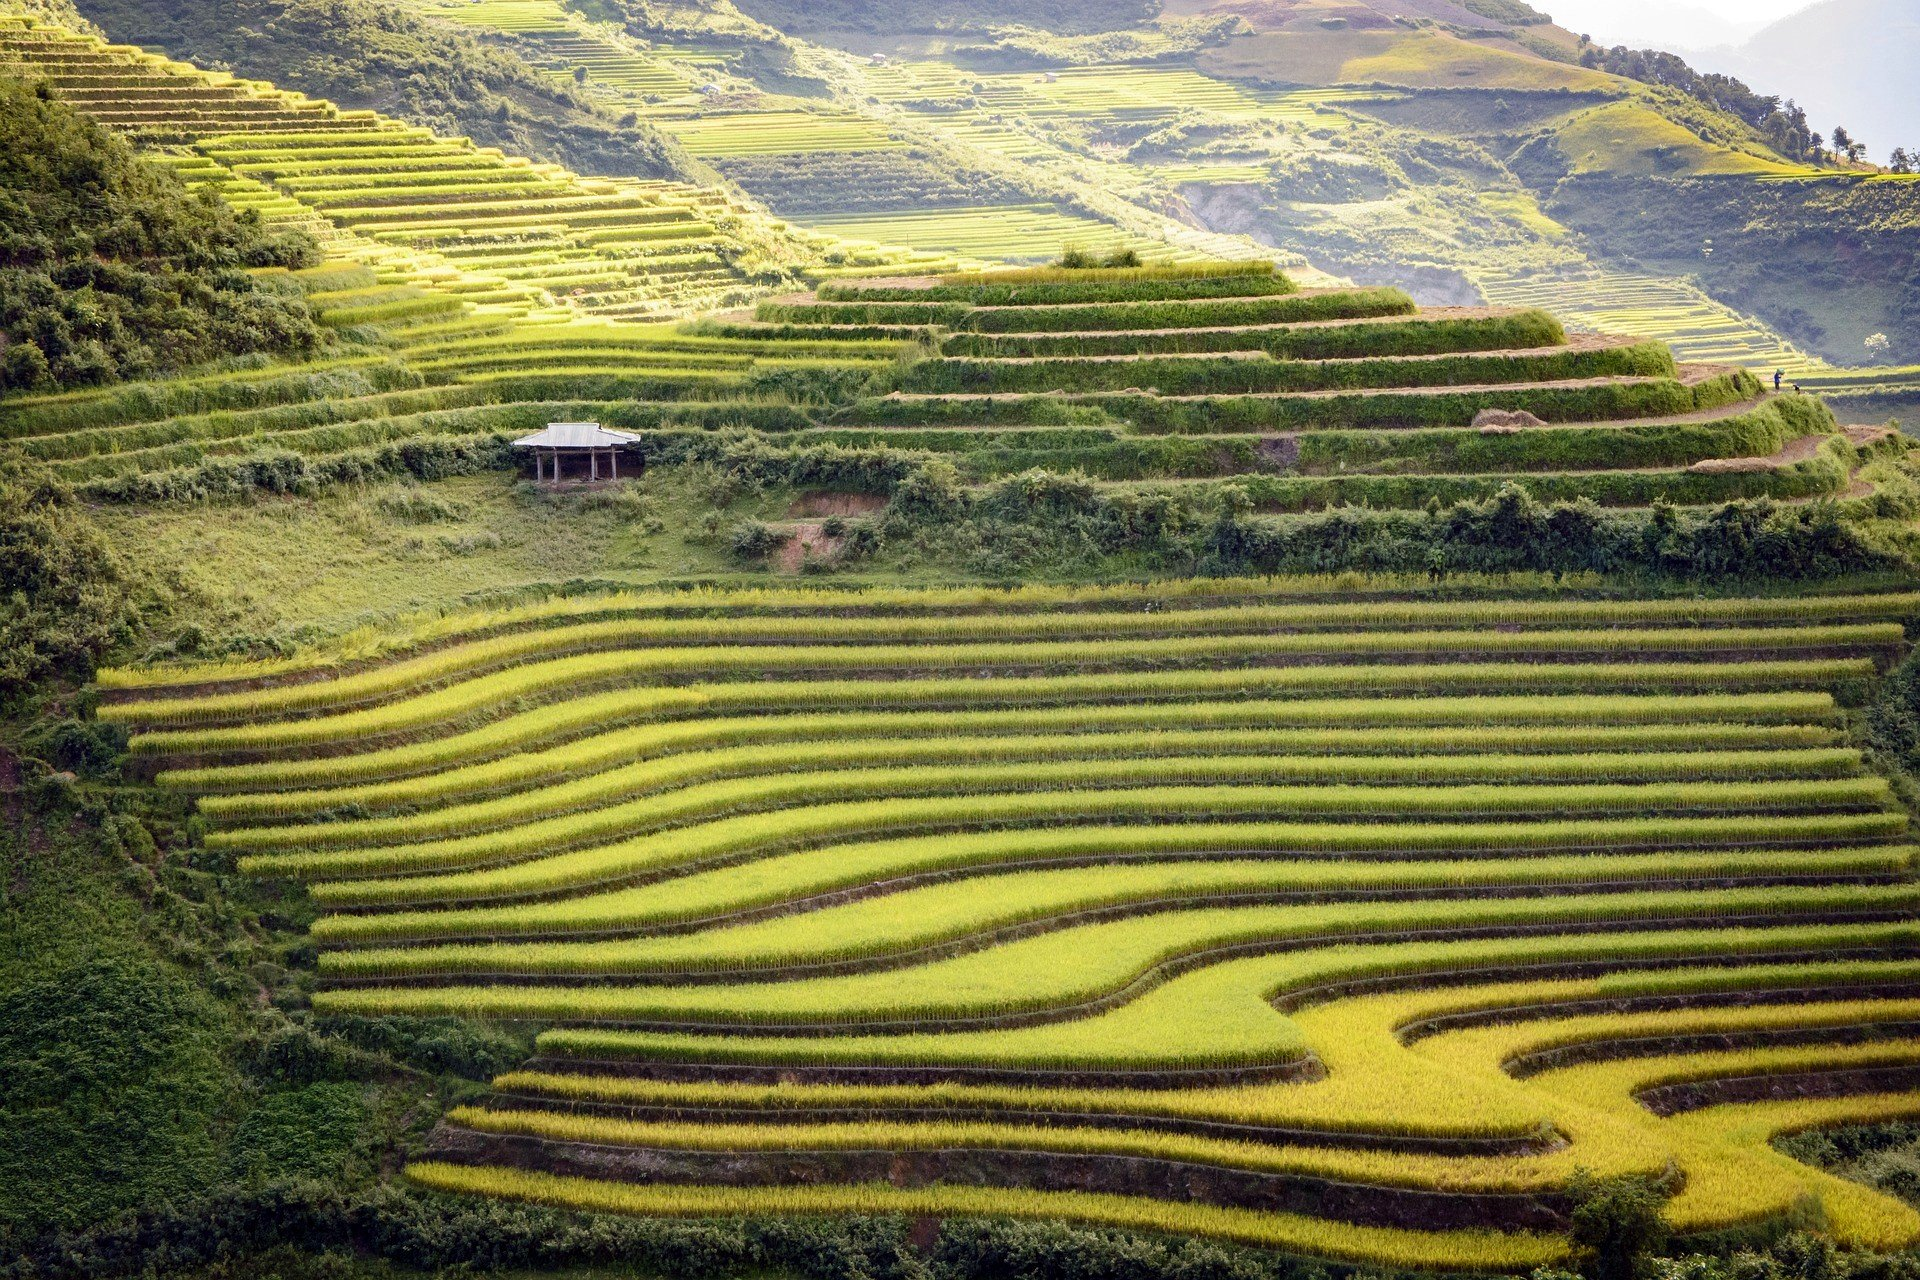 Rice terraces in Dien Bien